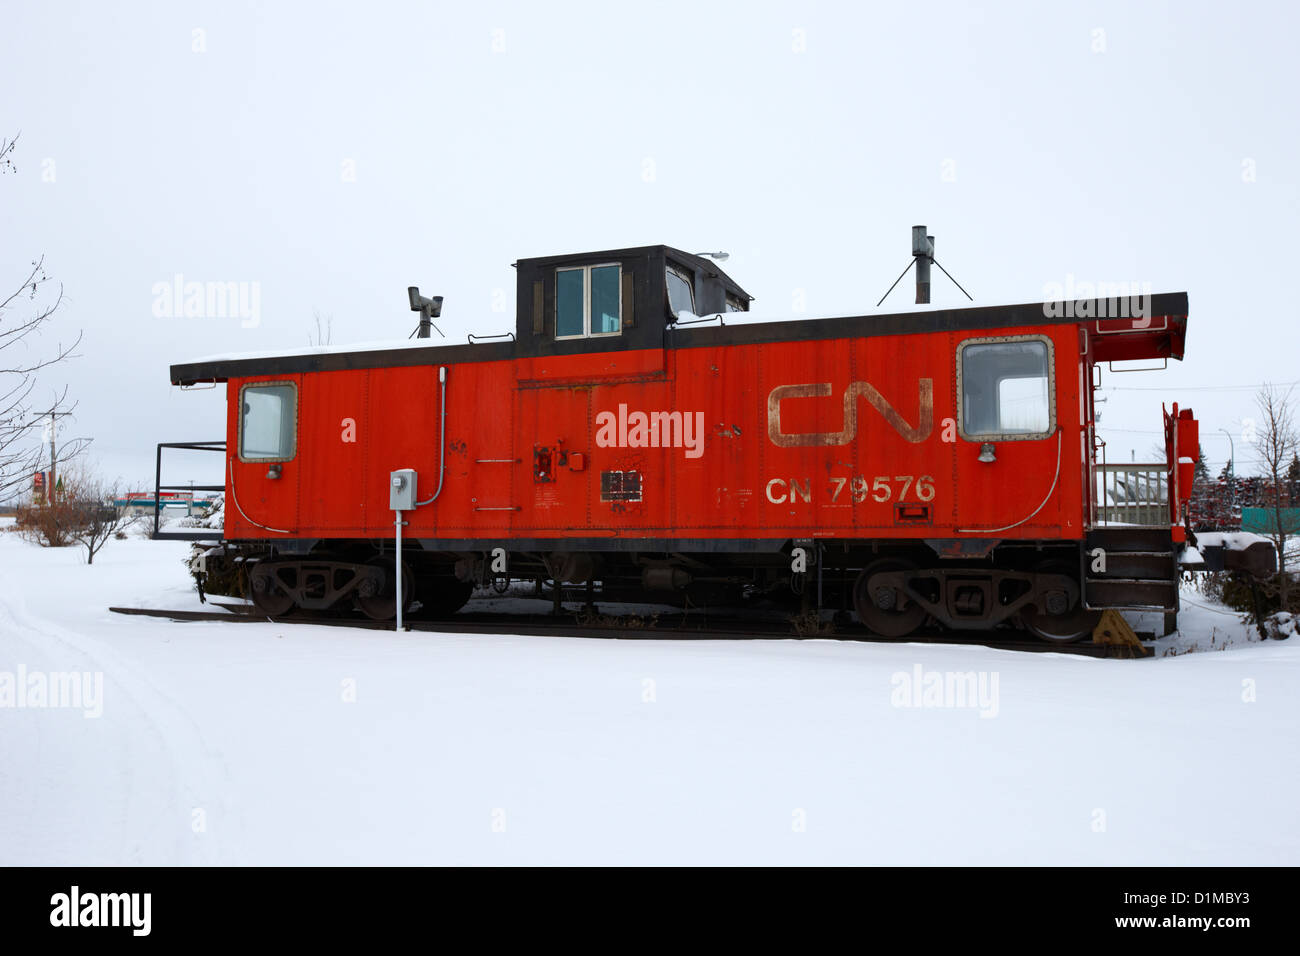 CN Caboose at CN Trackside gardens used as a community project Kamsack Saskatchewan Canada Stock Photo